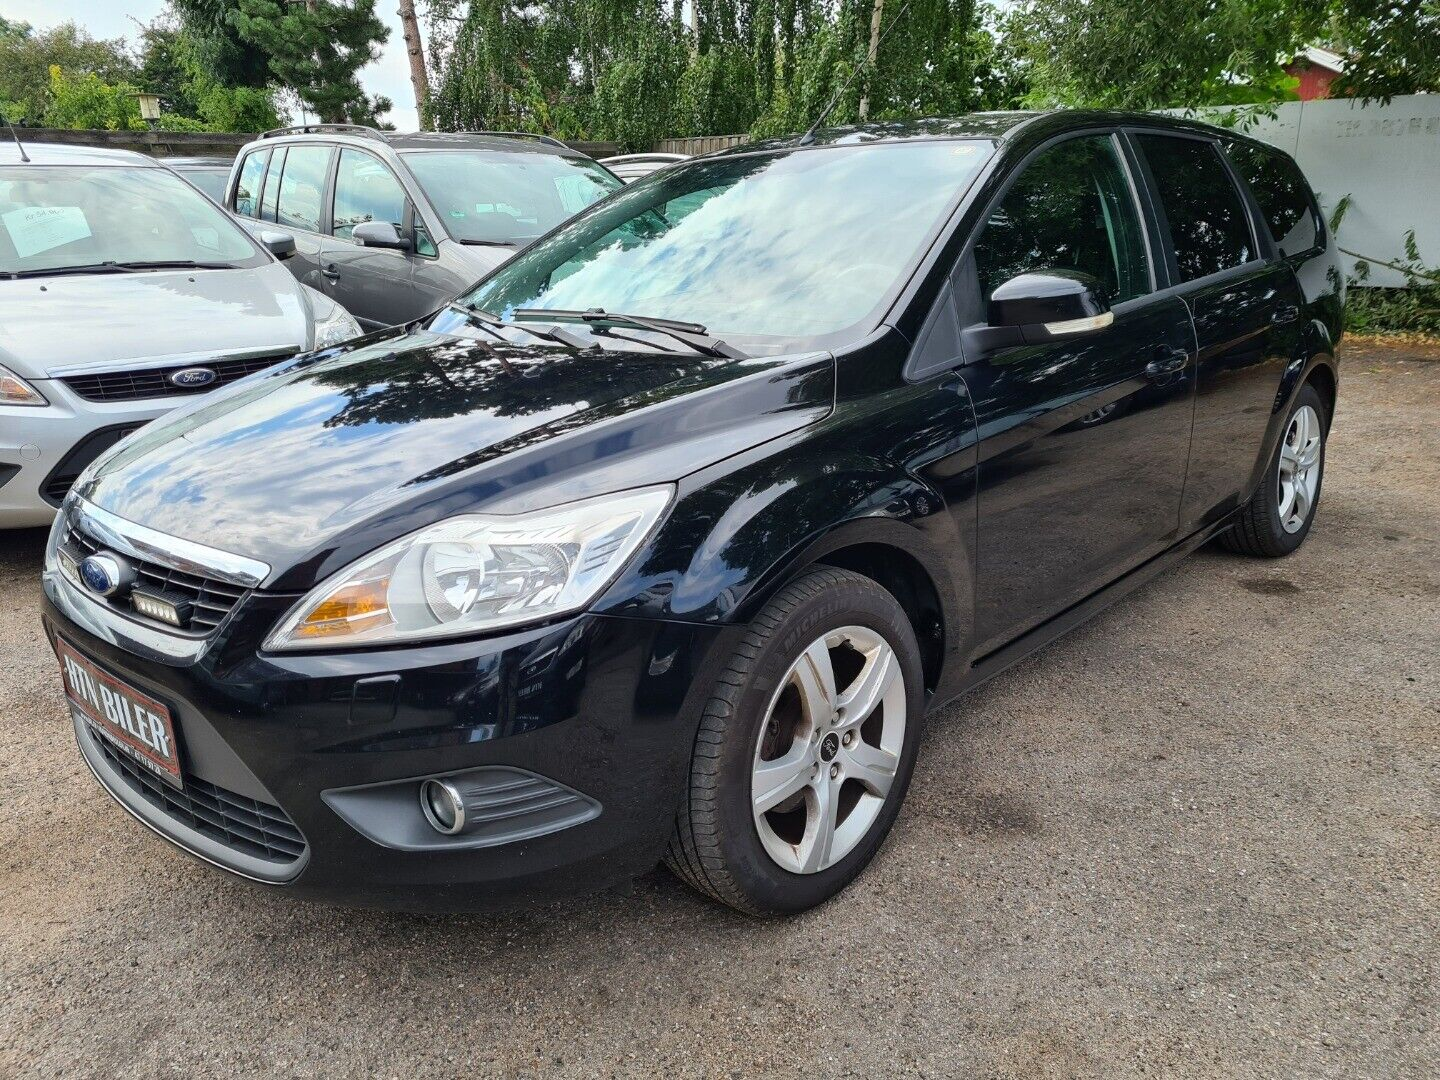 Ford Focus 1,6 TDCi 90 Trend Collec. stc. ECO 5d - 47.900 kr.